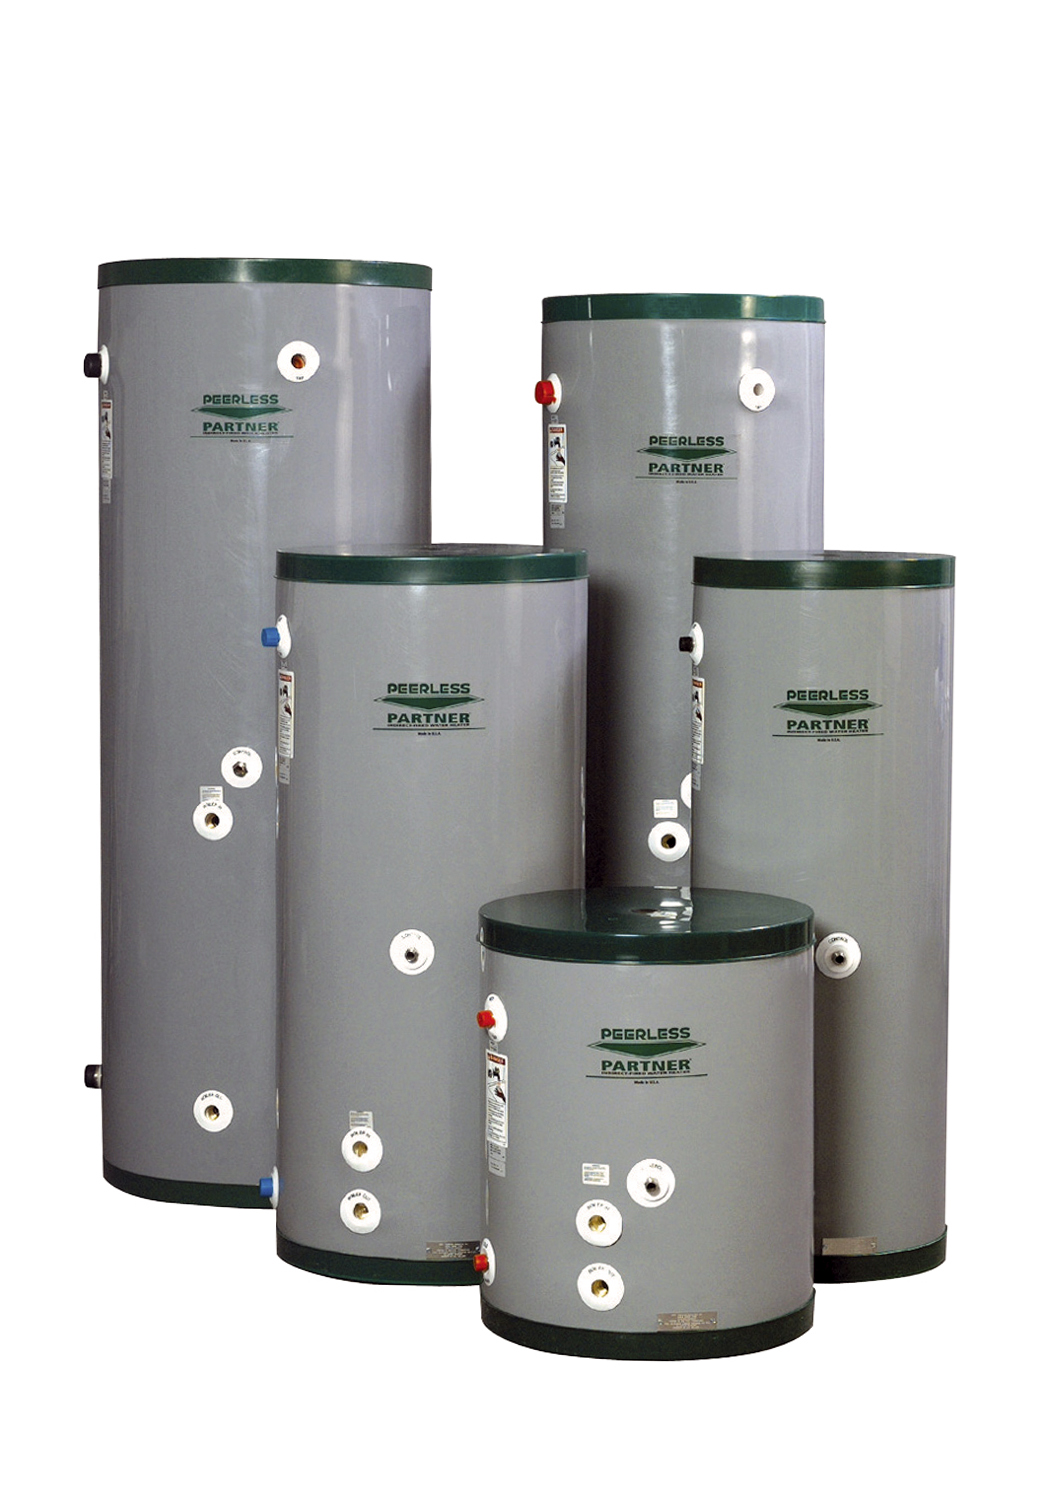 Peerless partnerindirect fired water heater pb heat the peerless partner indirect fired water heater is an efficient and dependable option for all domestic hot water requirements the indirect water heater ccuart Gallery